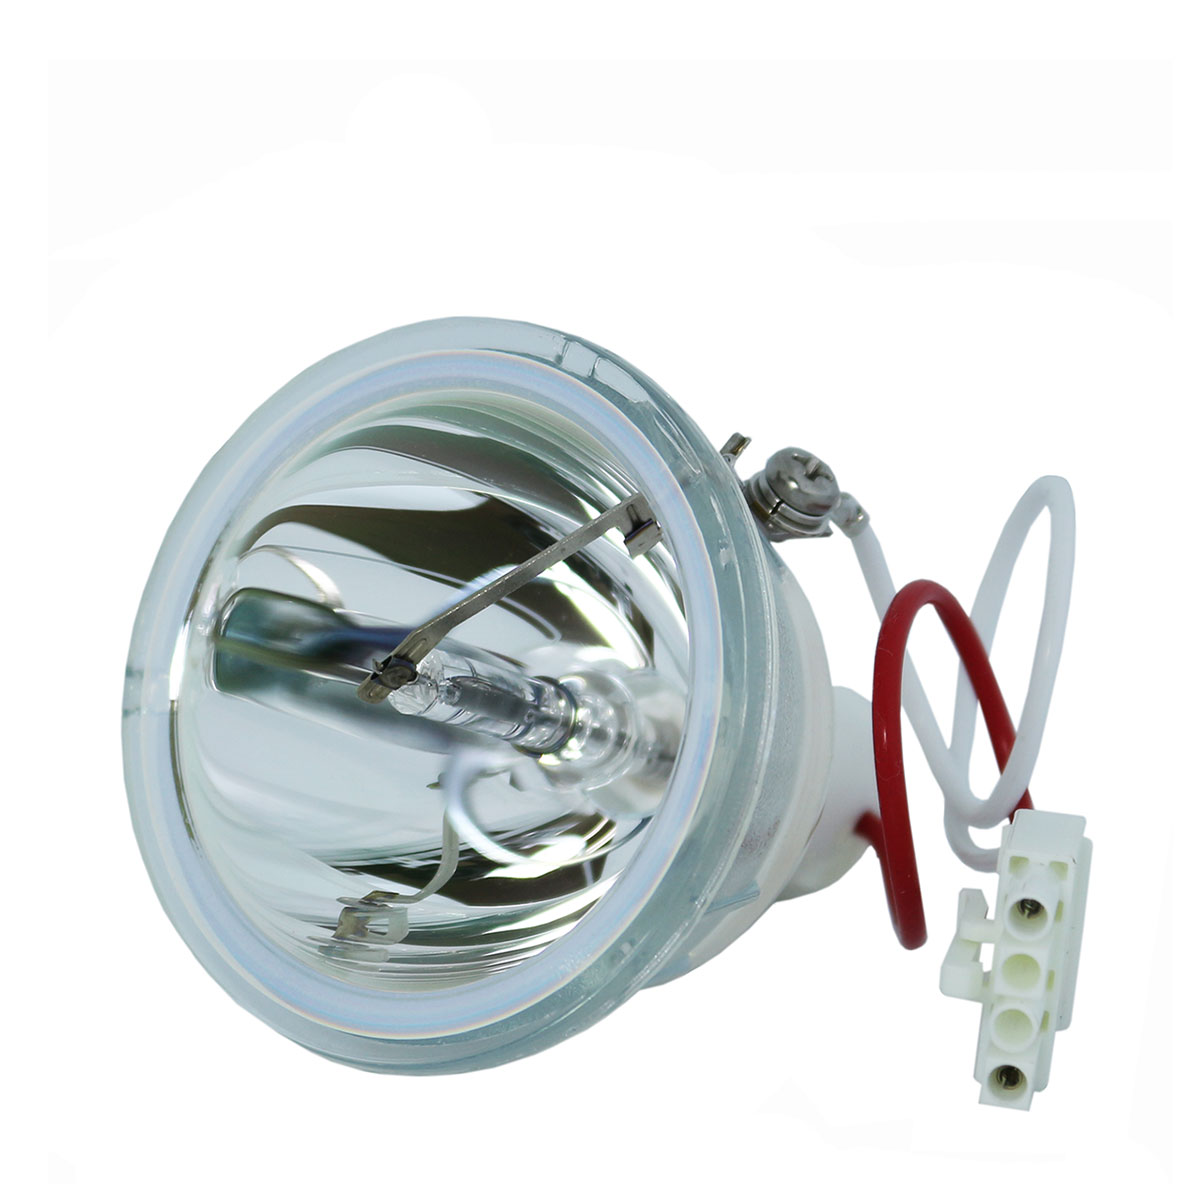 Compatible Bare Bulb SP-LAMP-028 SPLAMP028 for Infocus IN24+ IN24+EP IN26+ IN26+EP W260+ Projector Bulb Lamp Without housing projector lamp bulb sp lamp 028 lamp for infocus in24 in24 ep in26 ep in26 w240 projector bulbs lamp with housing free shipping